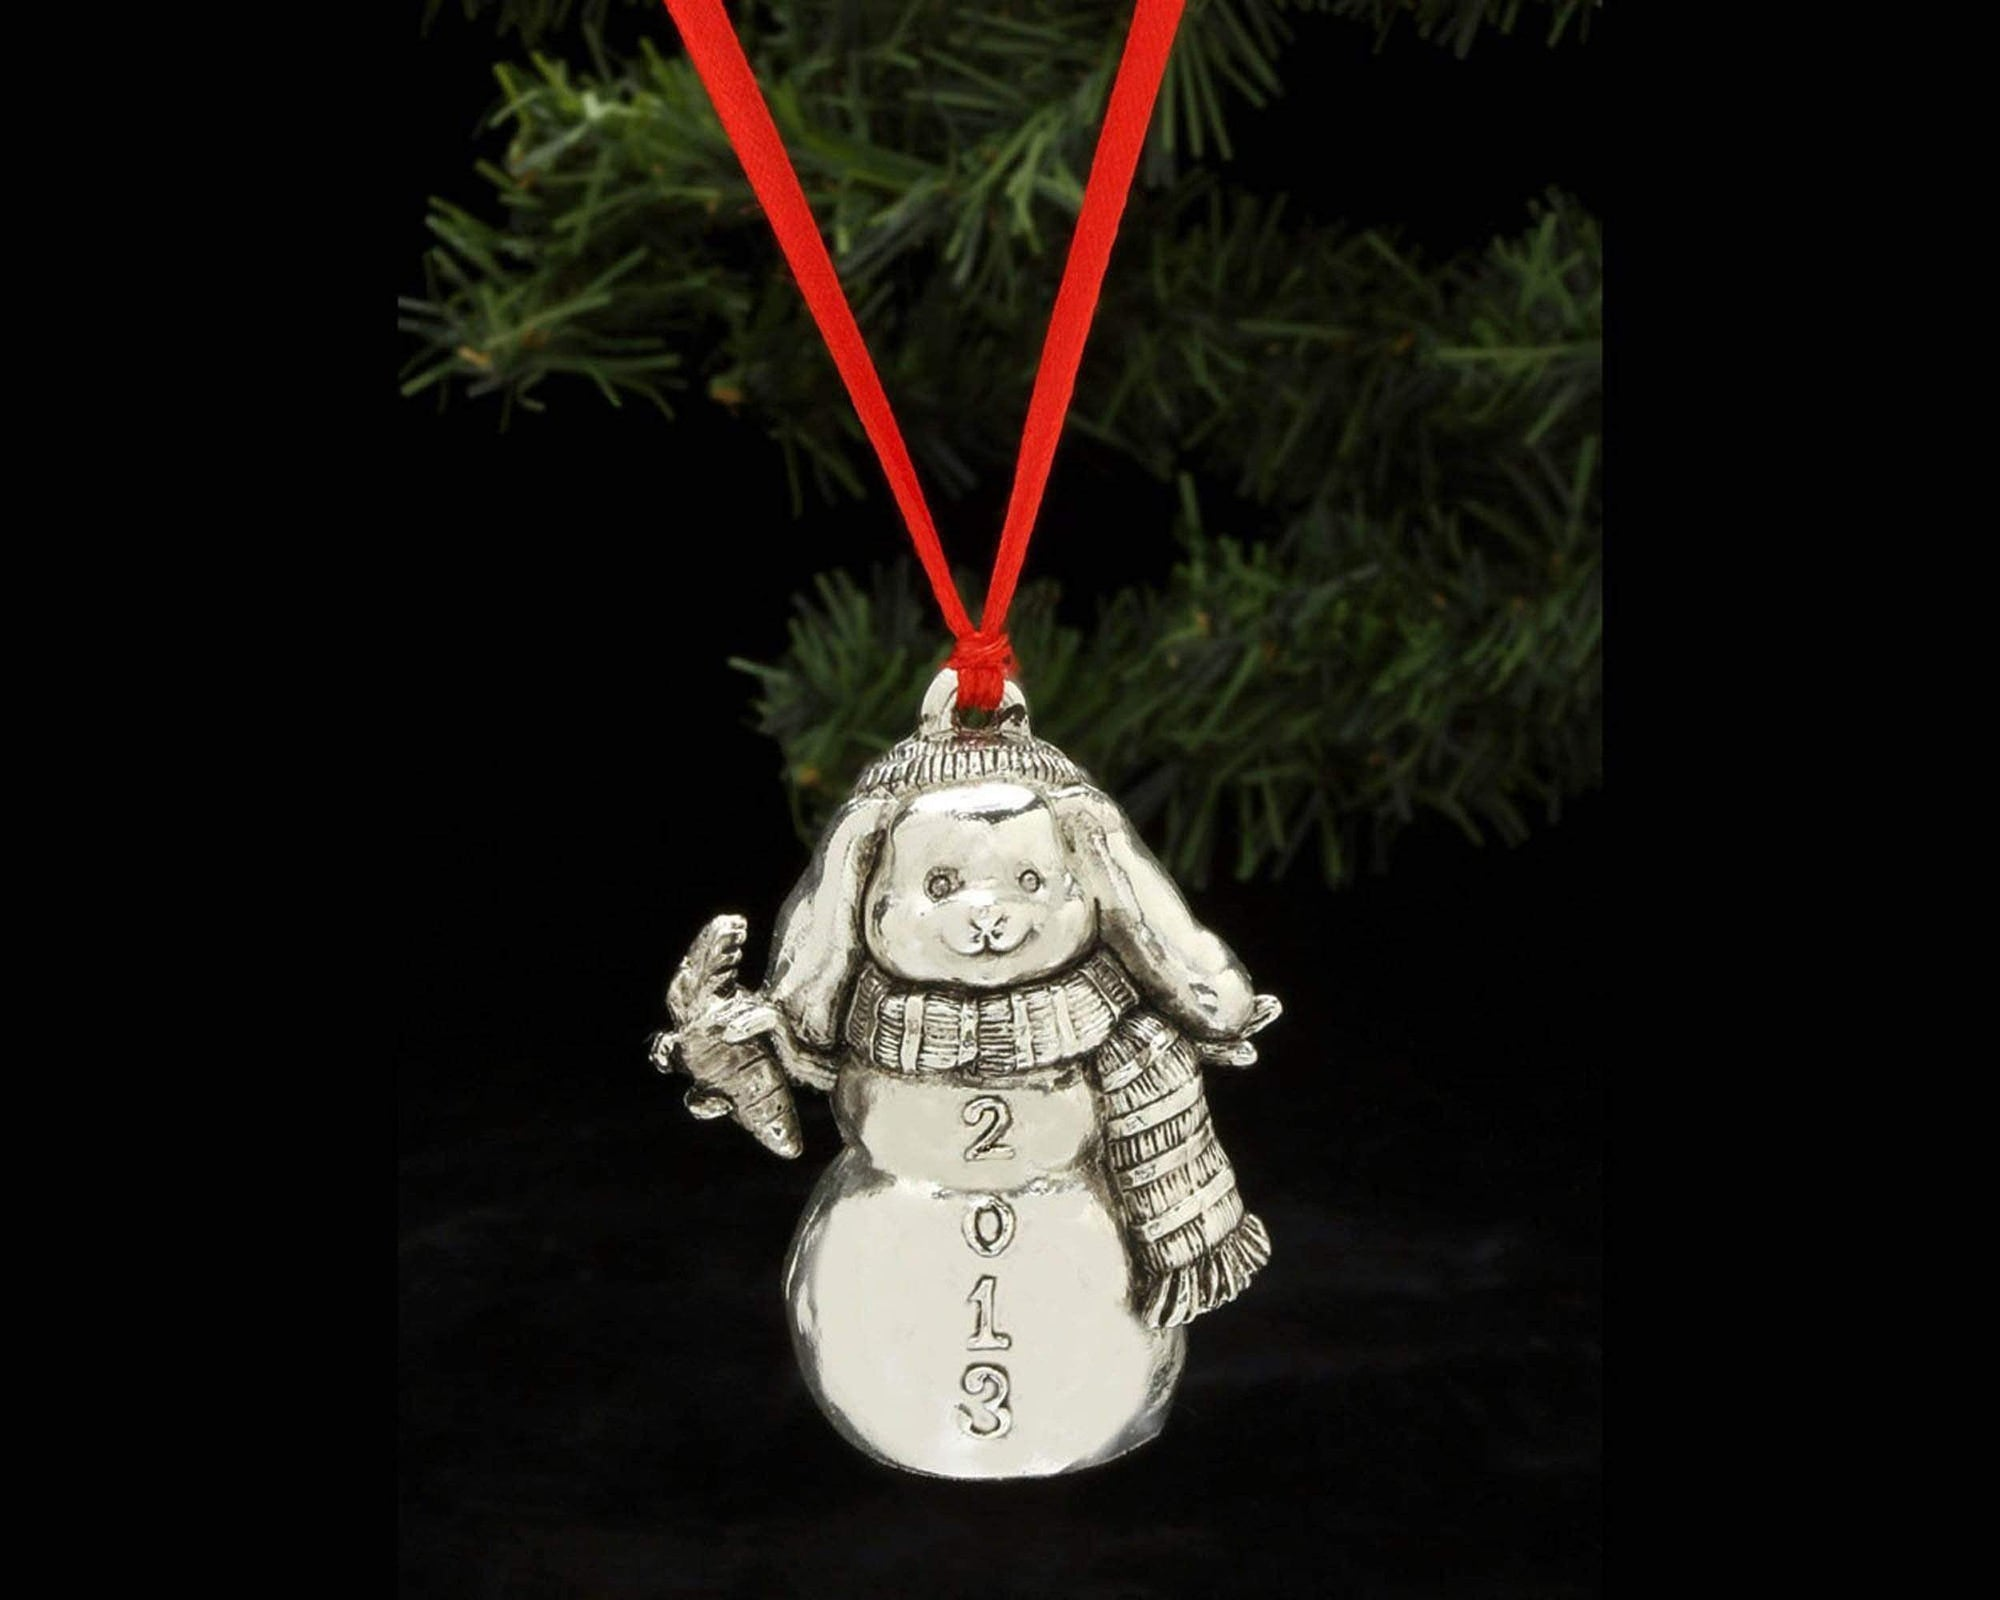 Arthur Court Holidays 2020 Home Sweet Home Bunny Bunny Annual Christmas Ornament